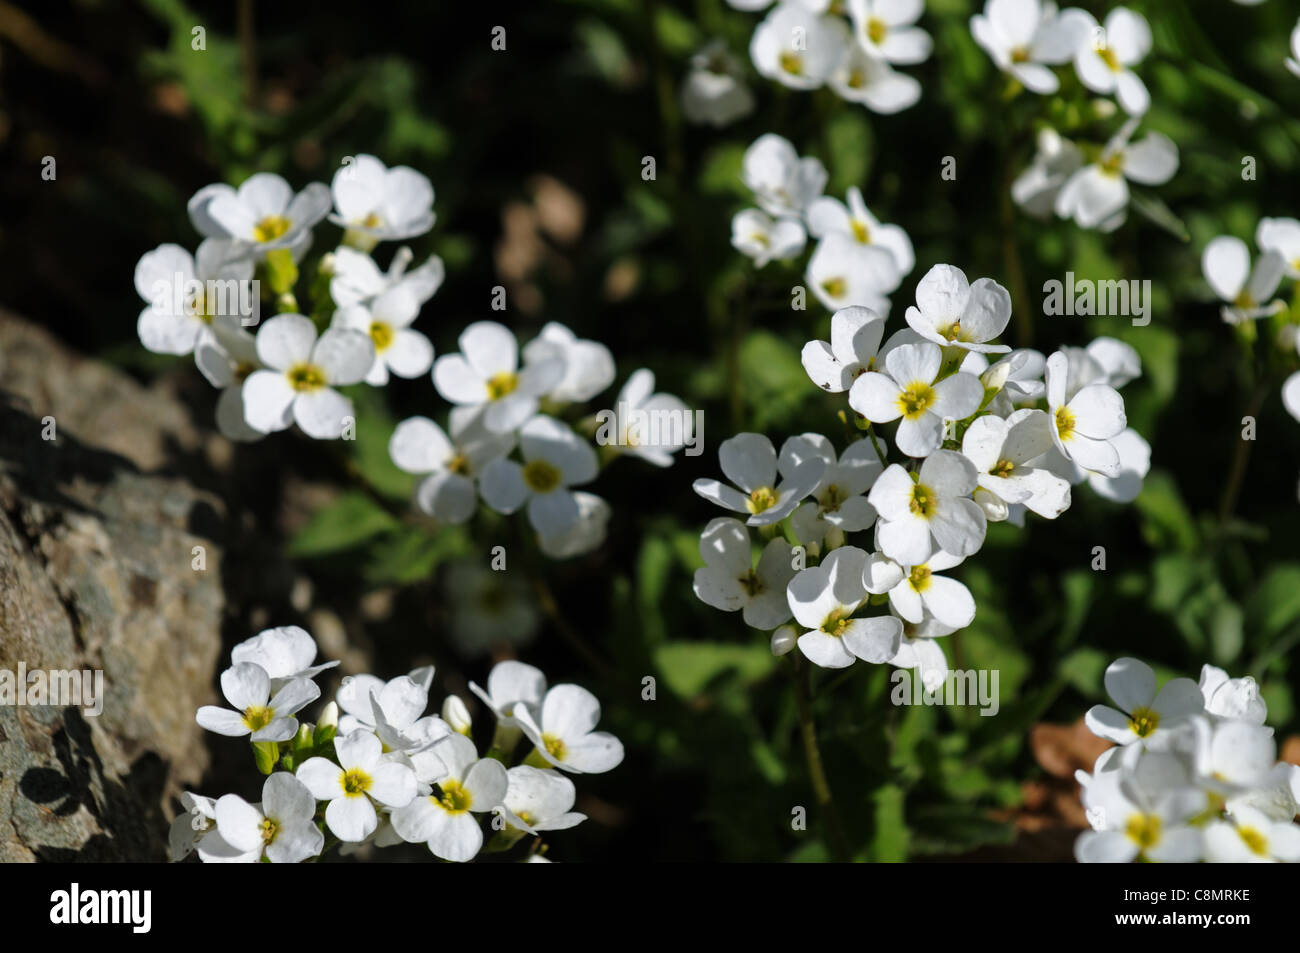 Arabis sicula perennial herbaceous plant white flowers blooms stock arabis sicula perennial herbaceous plant white flowers blooms blossoms dainty small spring mightylinksfo